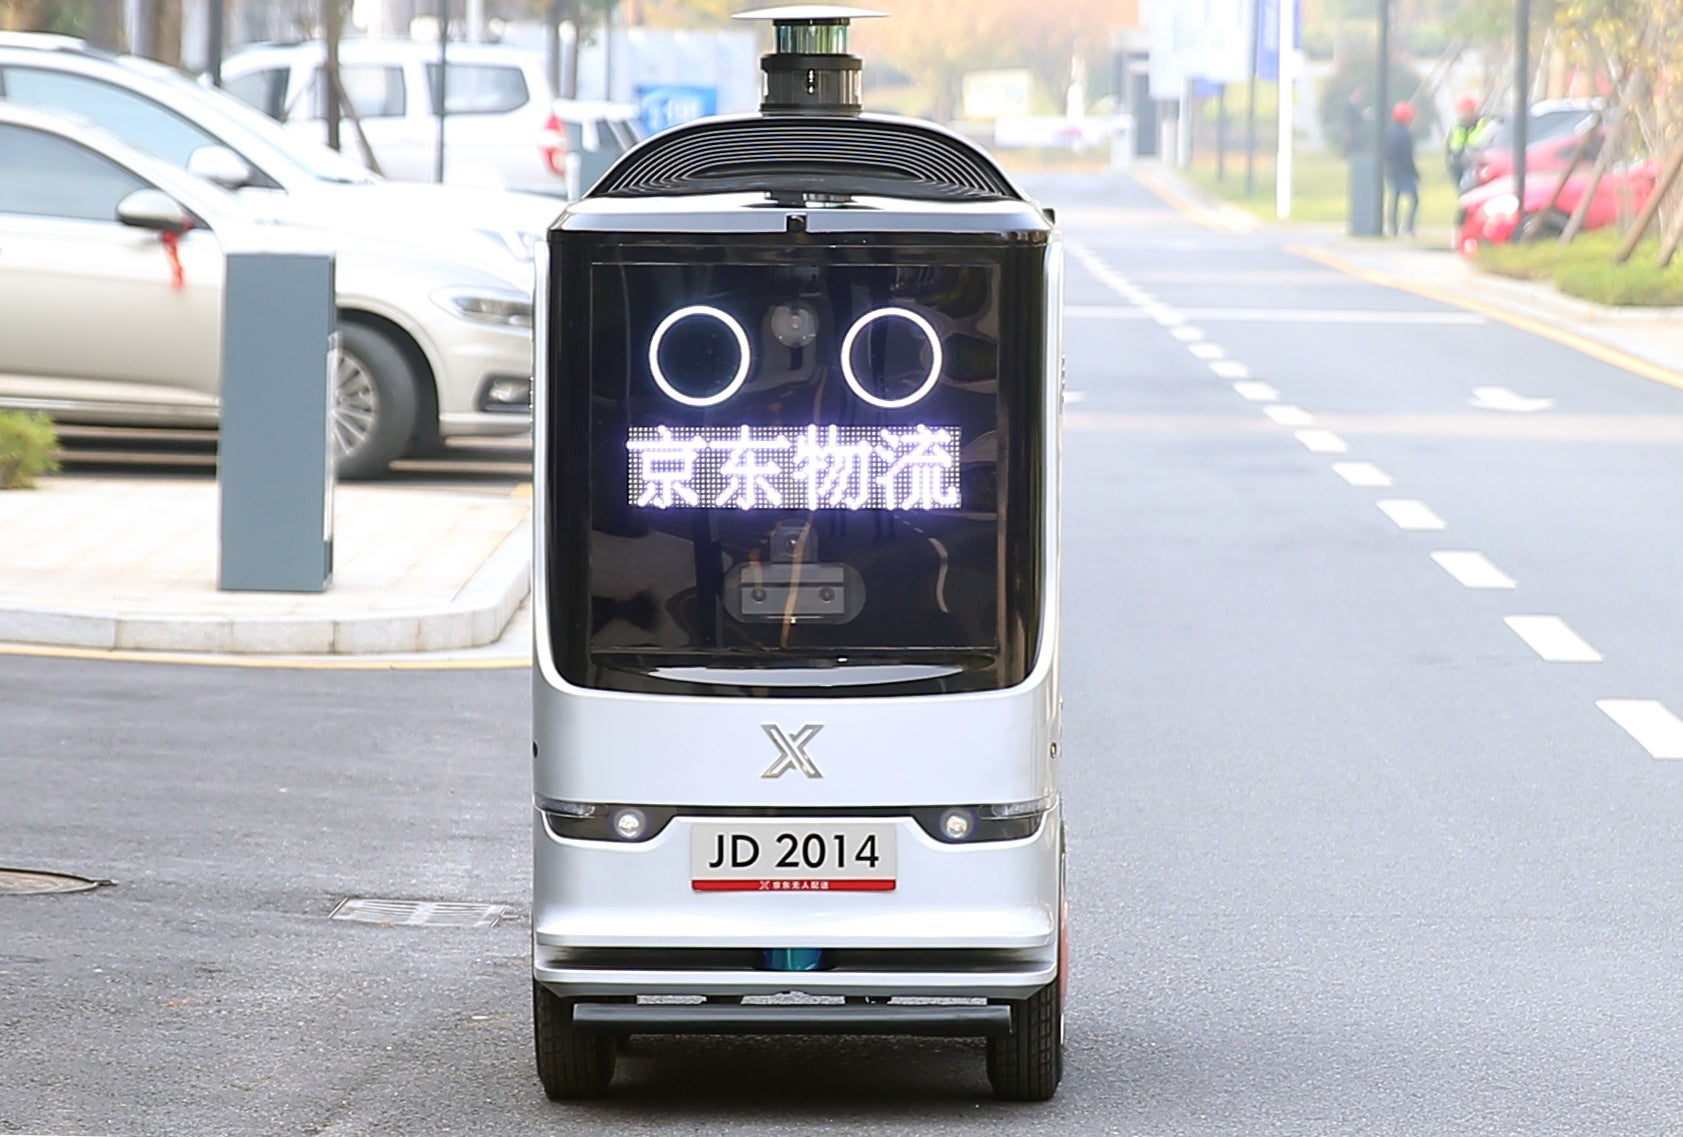 One of JD's autonomous delivery robots is seen on the street.